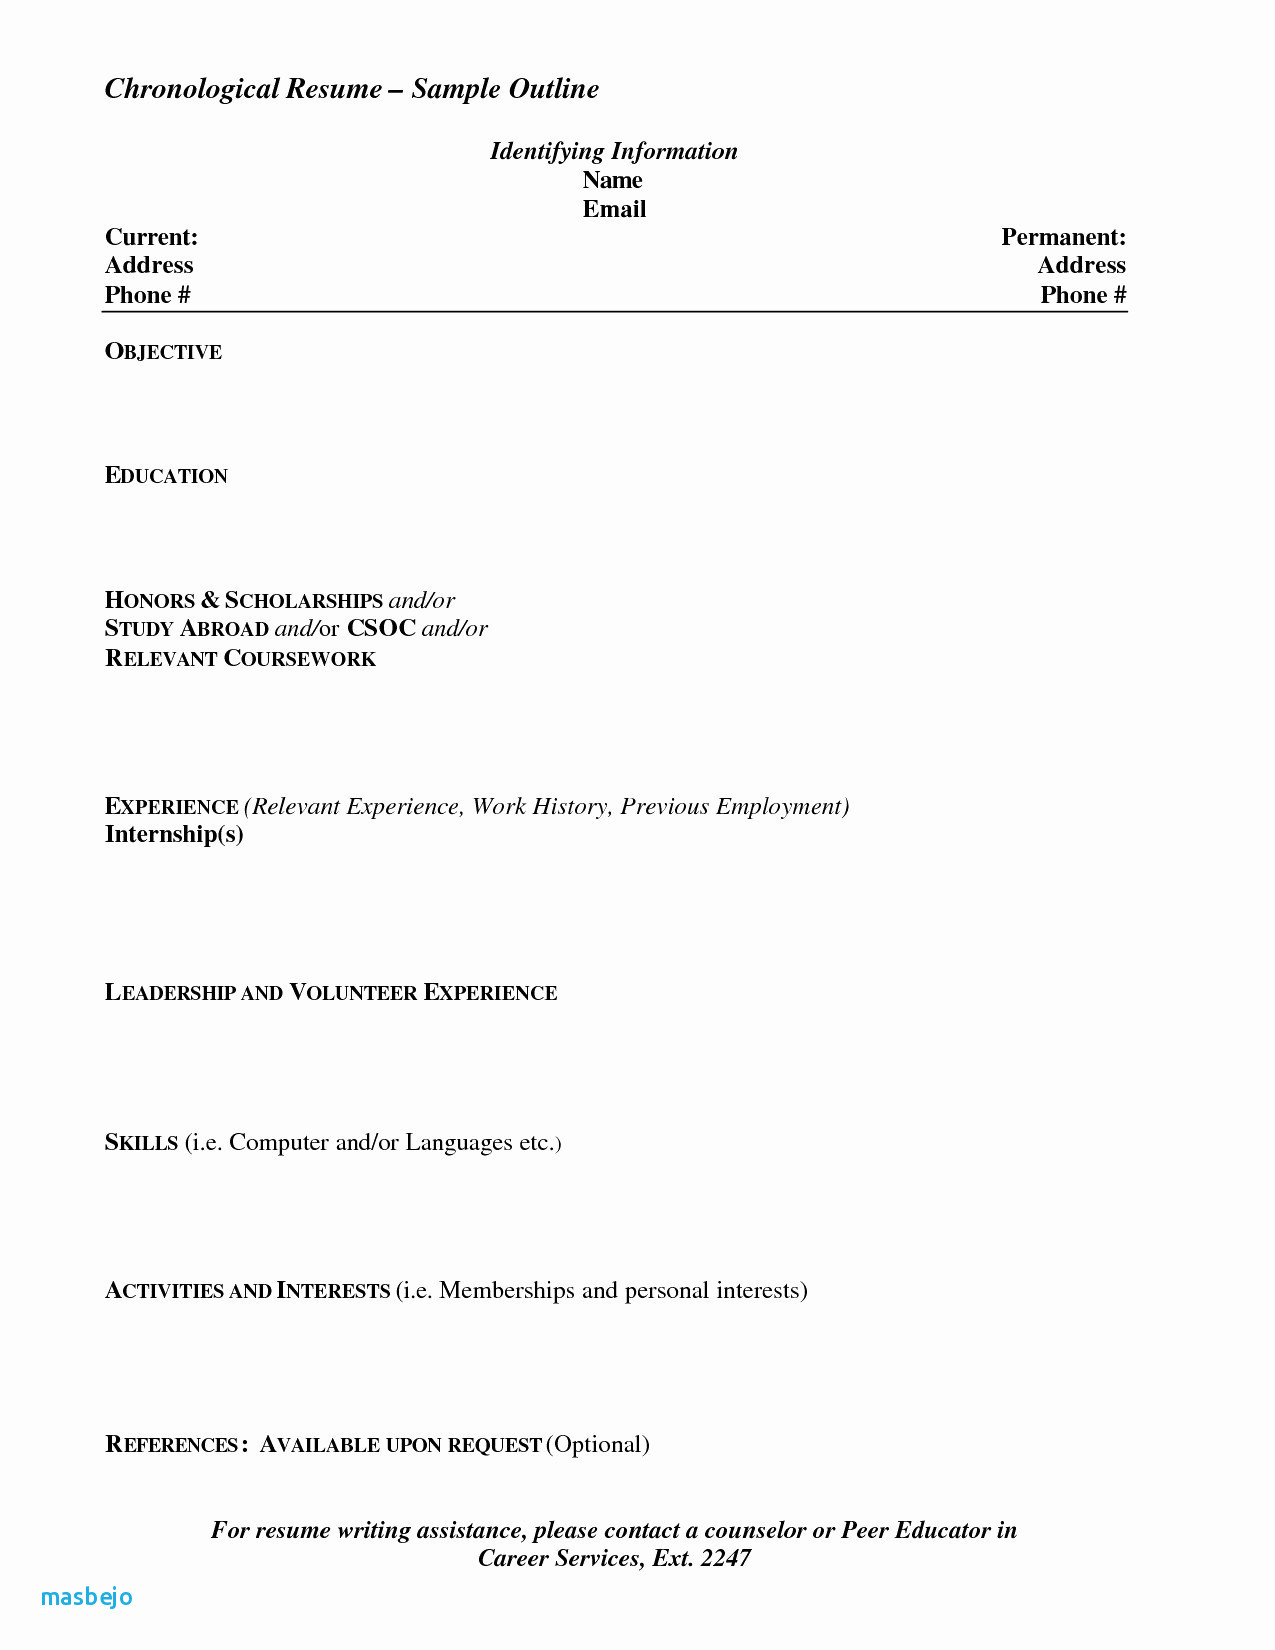 Resume Self Descriptive Words - Descriptive Words for Resume Lovely Objective for Caregiver